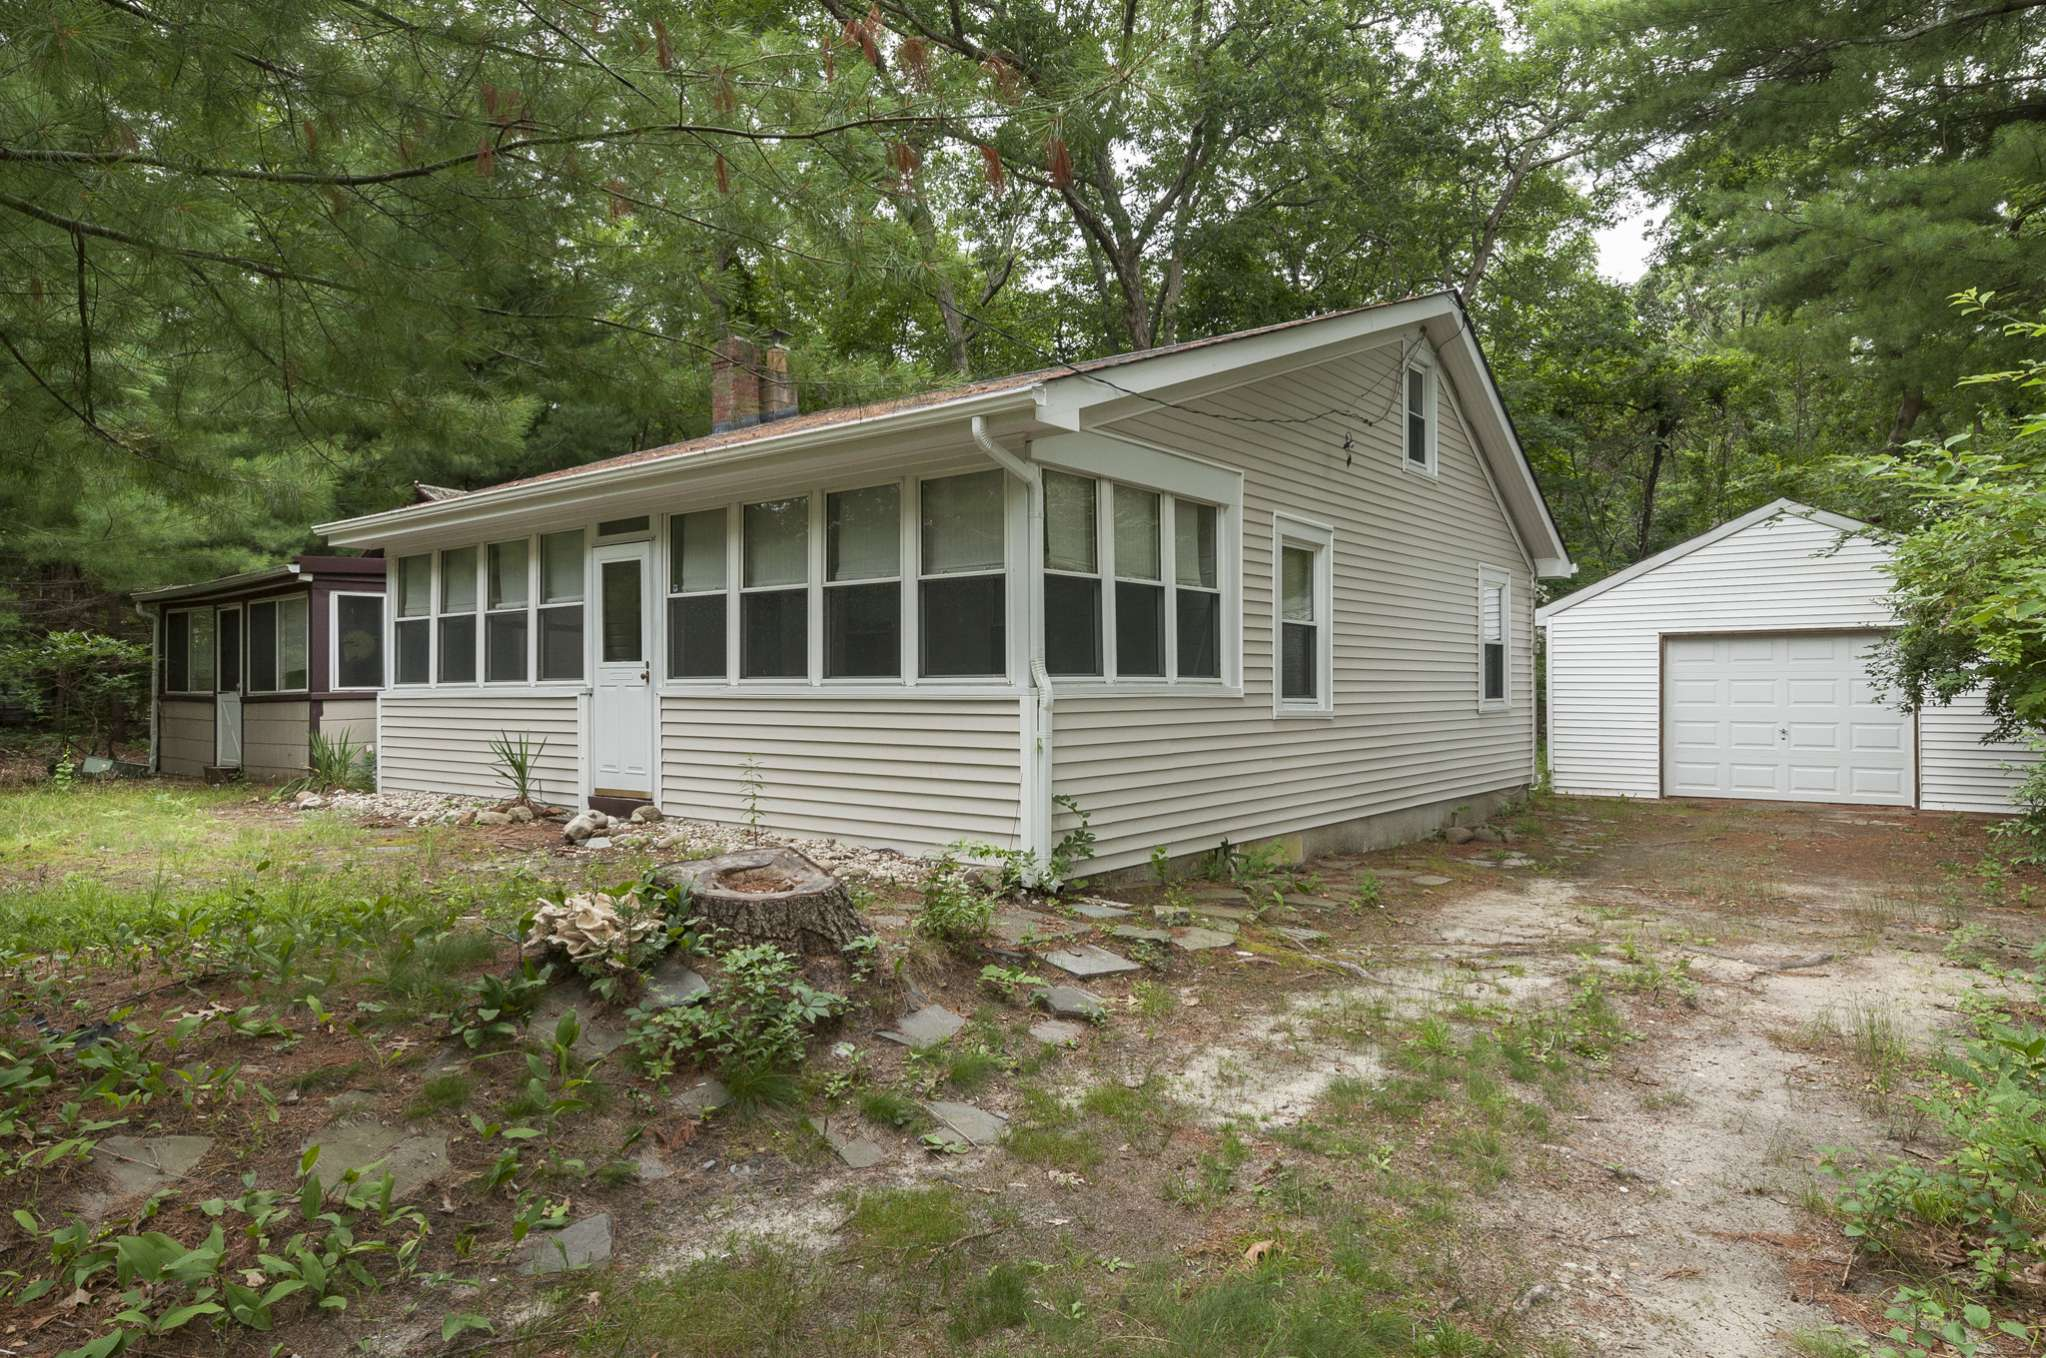 Single Family Home for Sale at Cottage Charm In Bayview Oaks 26 Oak Grove Road, Southampton, New York